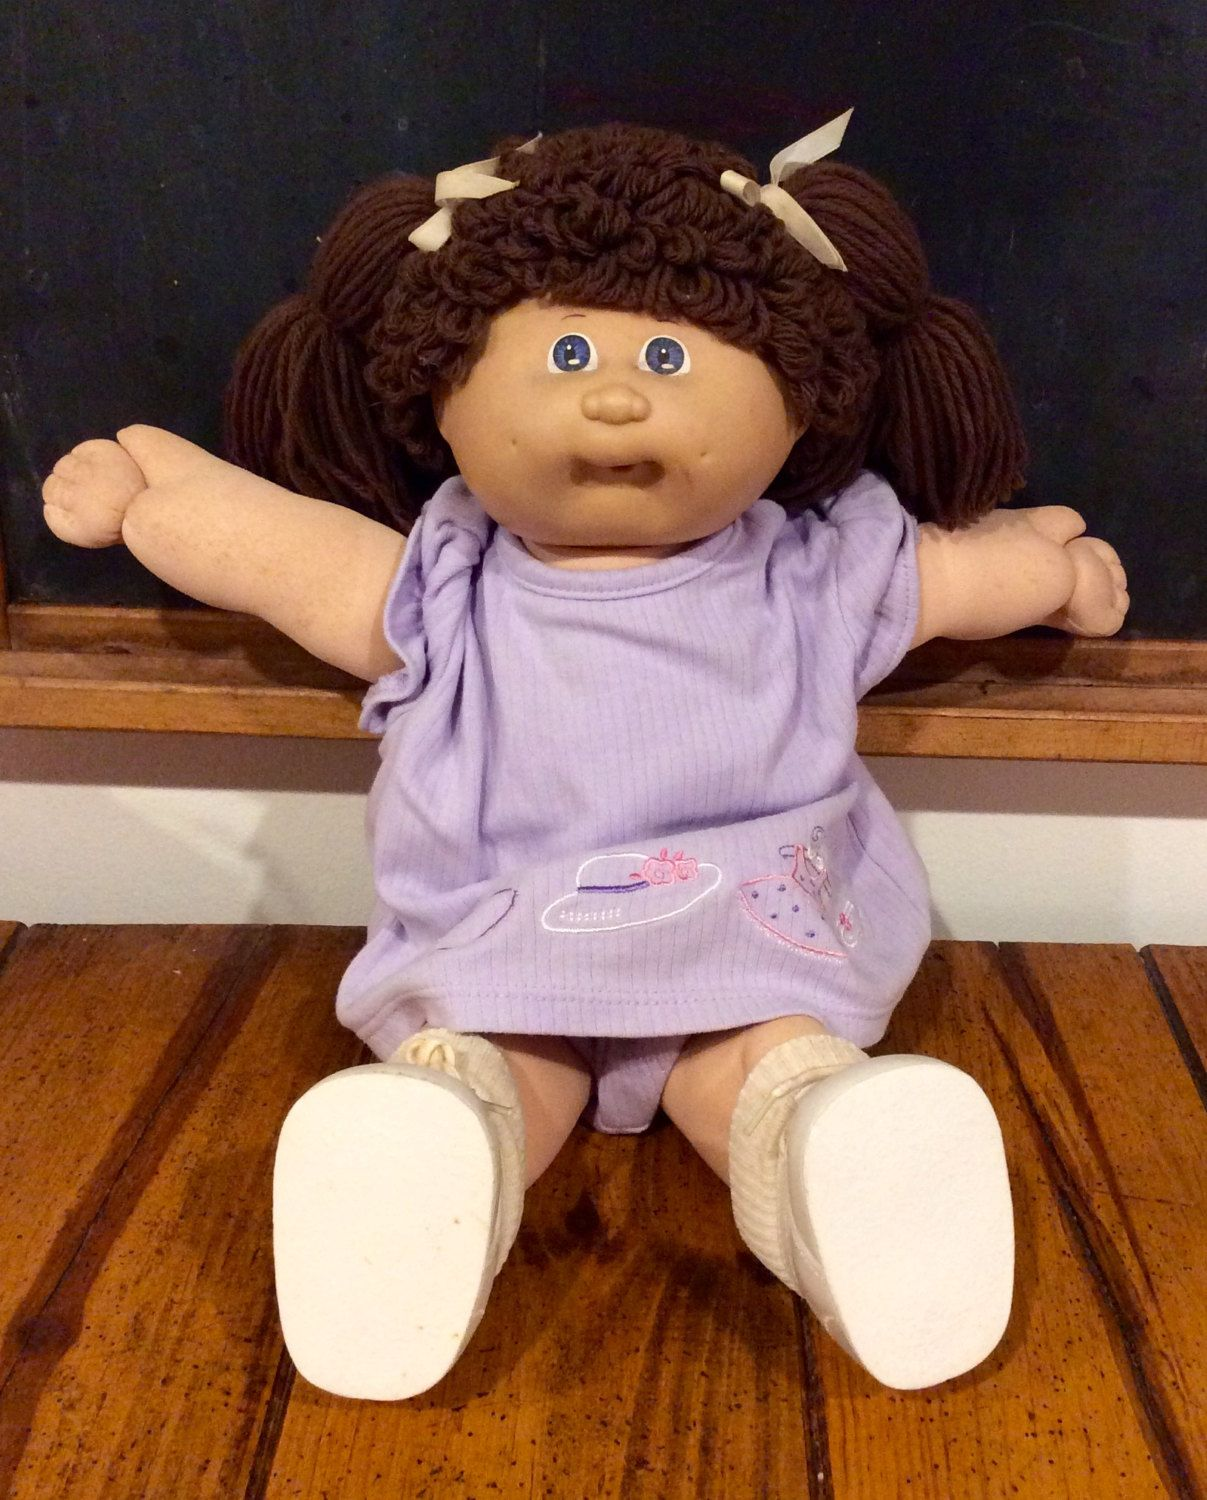 1985 Cabbage Patch Kids Brown Haired, Lavender Eyed, Blue Signature, PMI  Tag Coleco Girl Doll,… | Cabbage patch kids dolls, Cabbage patch kids, Cabbage  patch babies